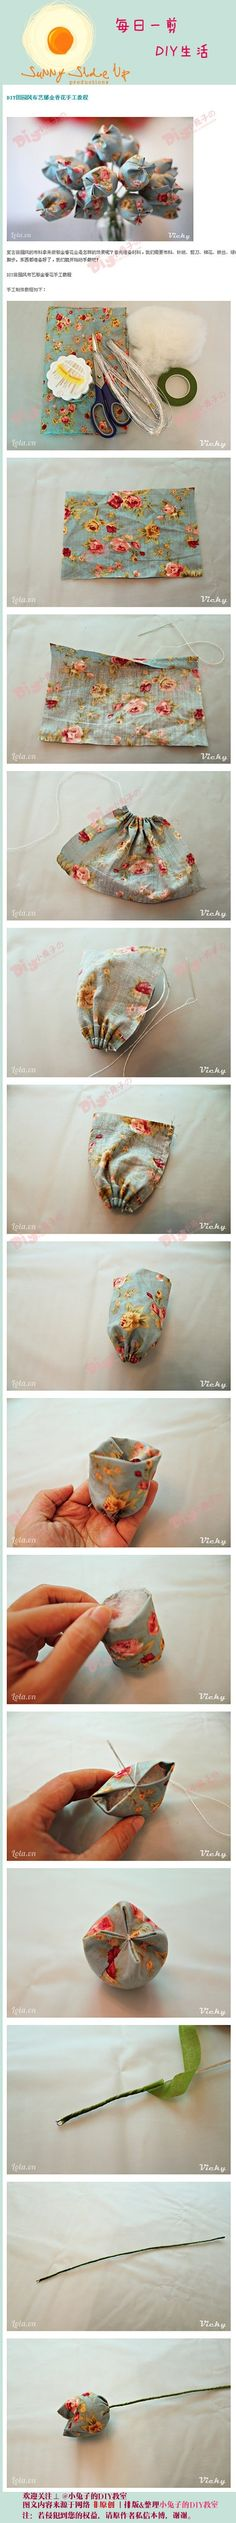 DIY Fabric Tulip Flower DIY Fabric Tulip Flower by patylsantos